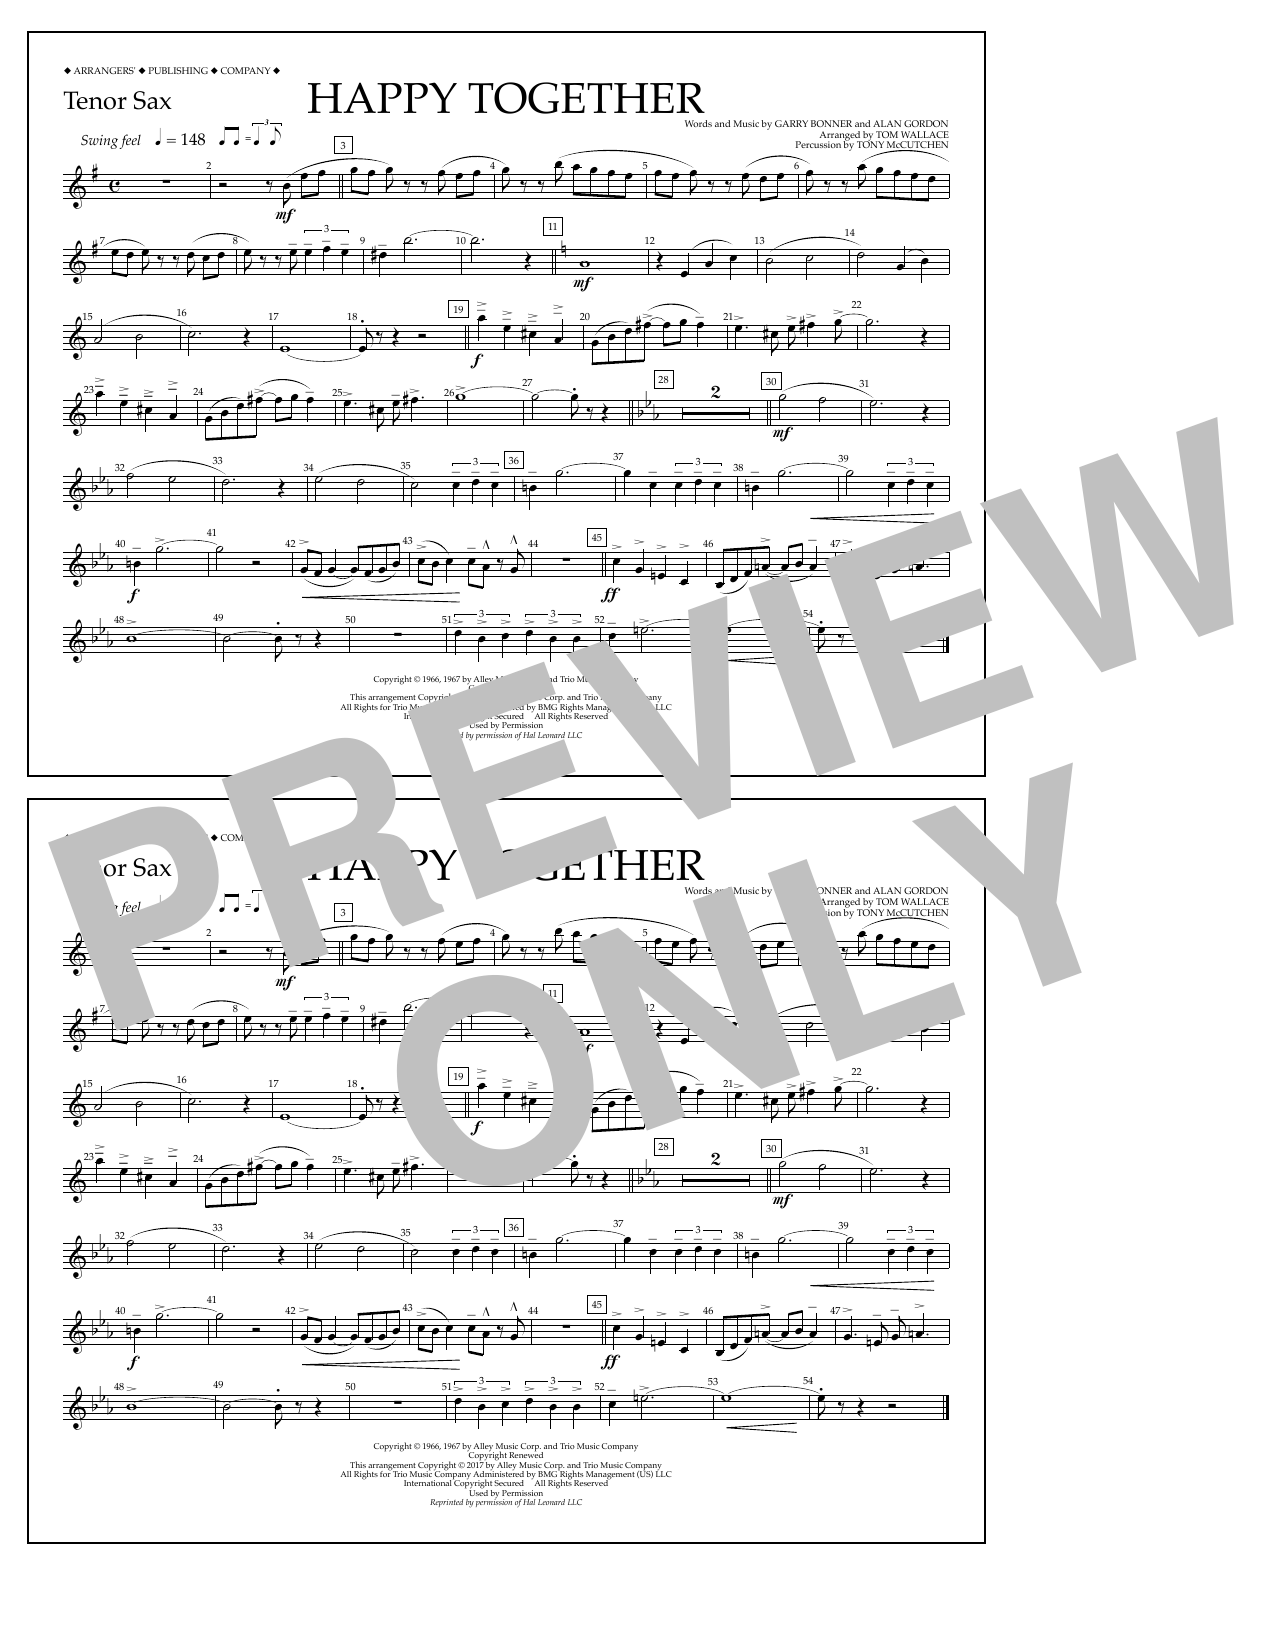 Happy Together - Tenor Sax Sheet Music